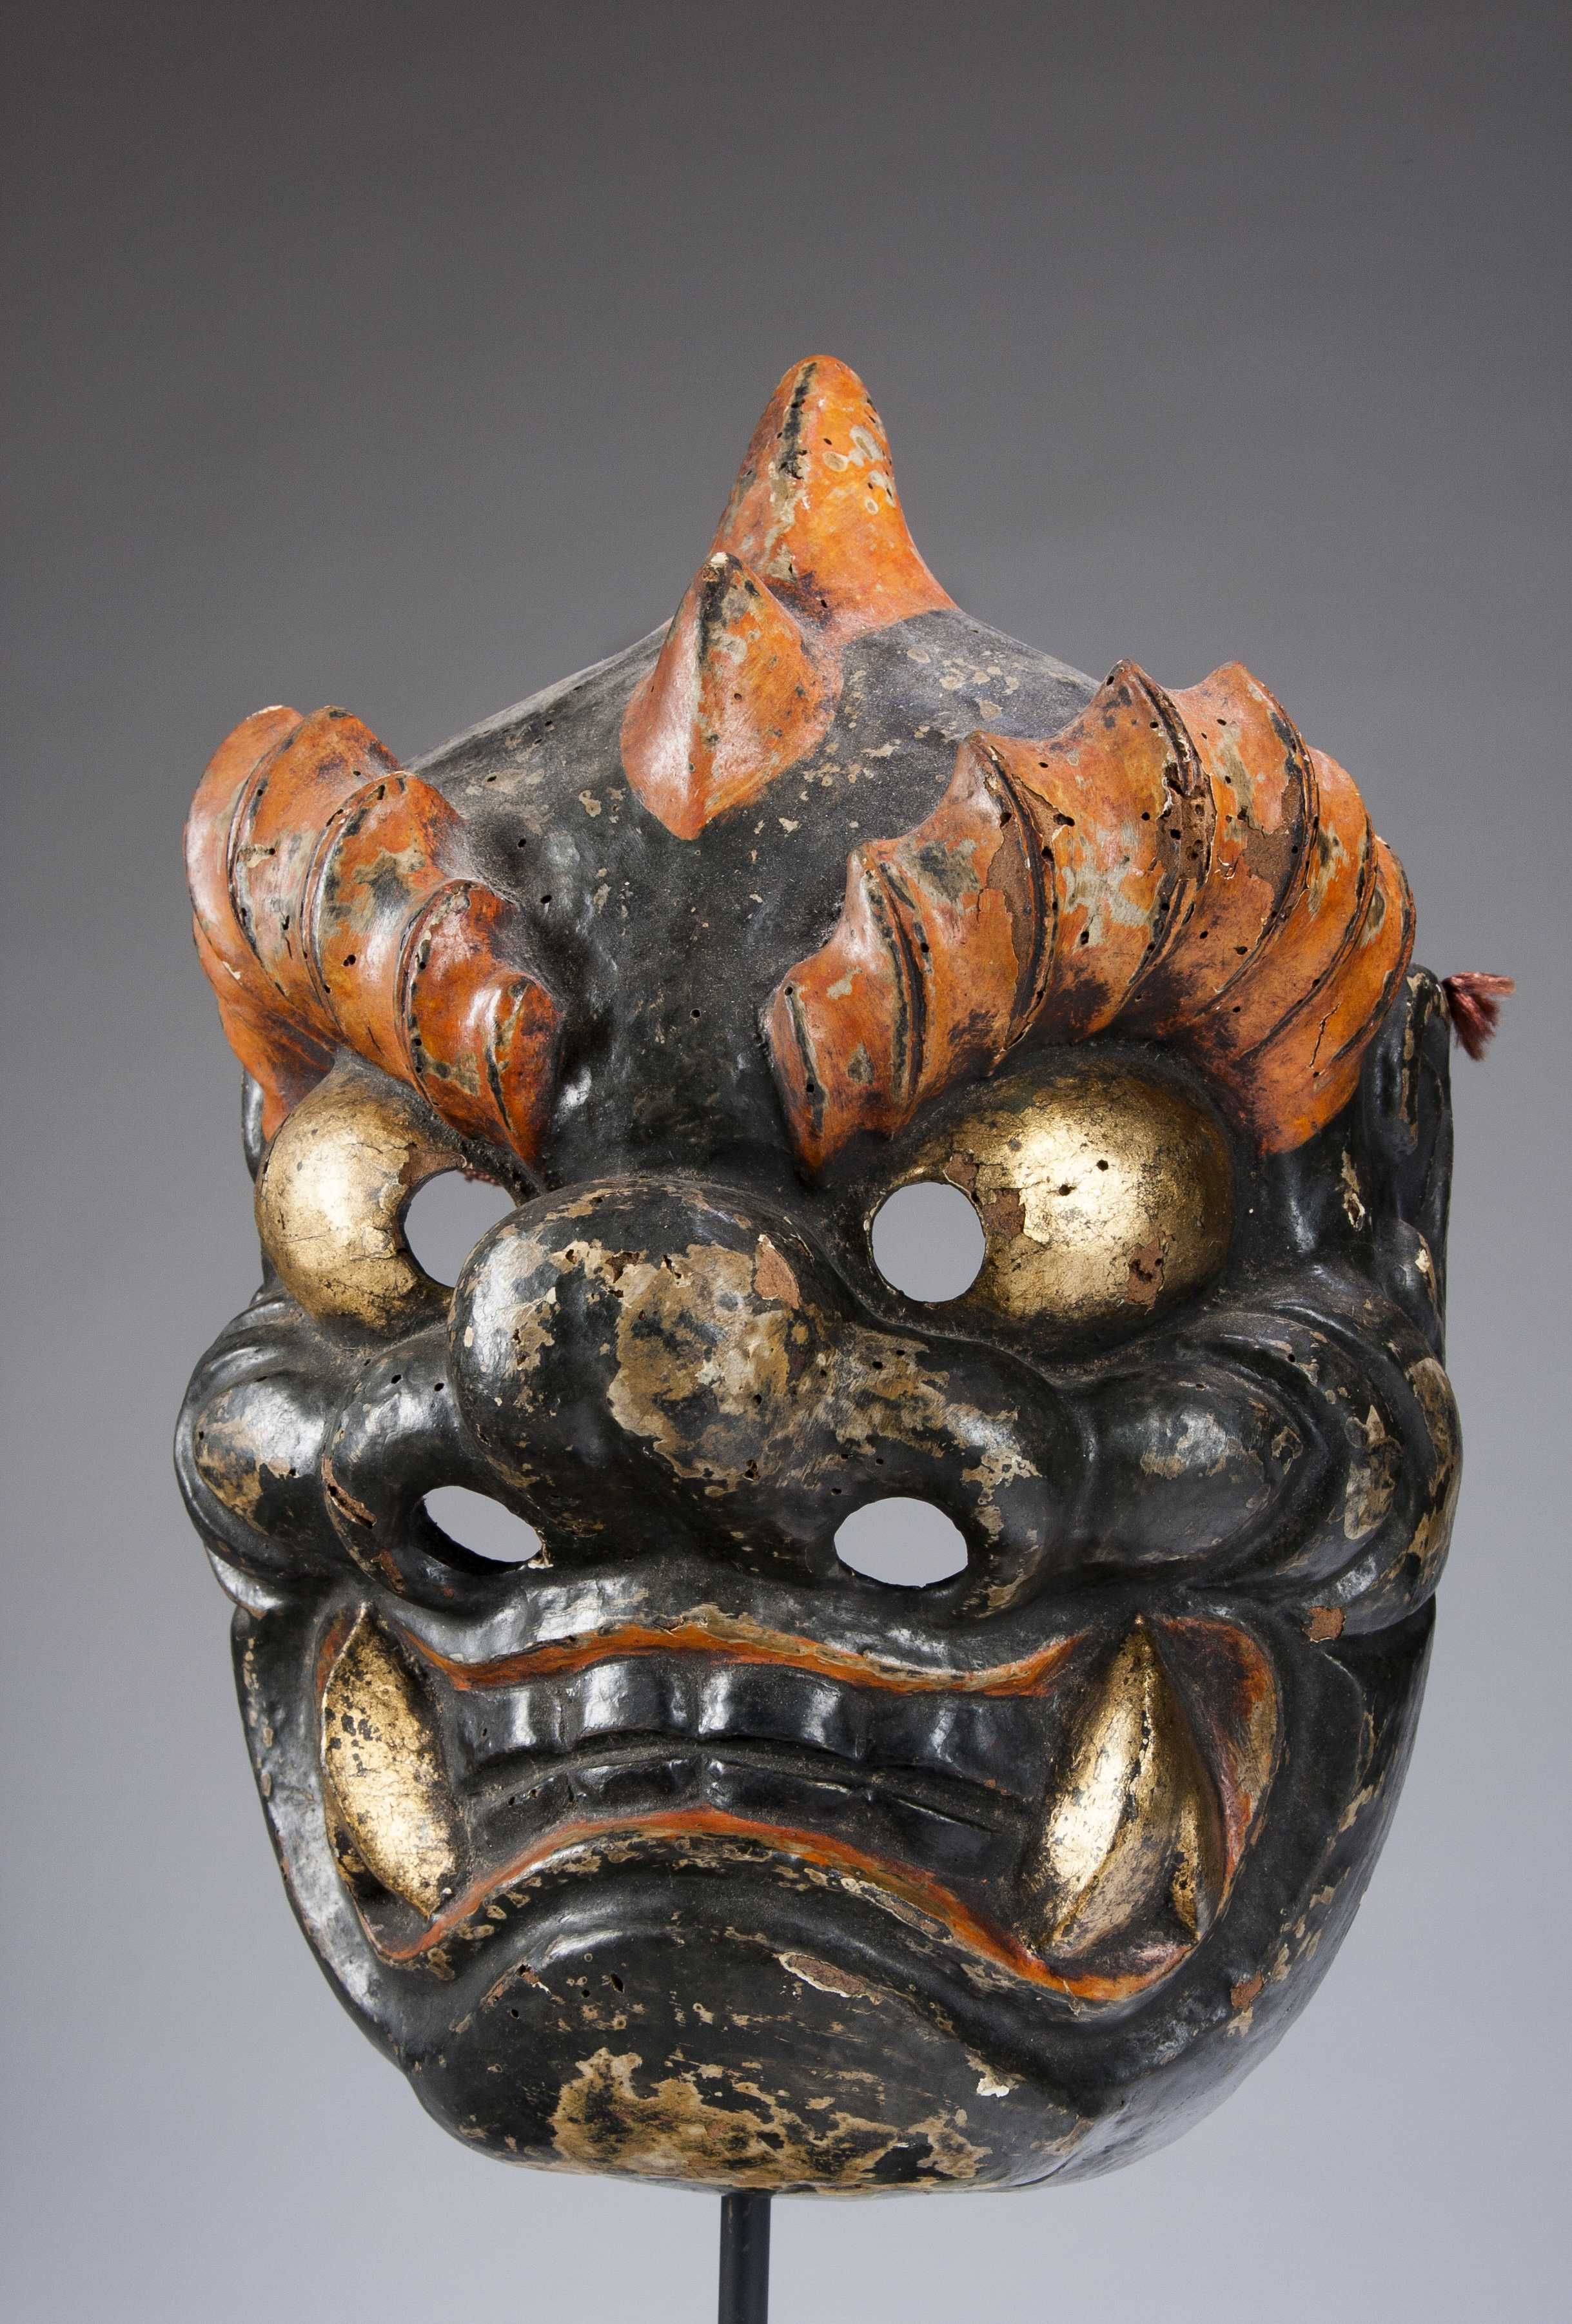 a japanese demon or monster mask from the 20th century